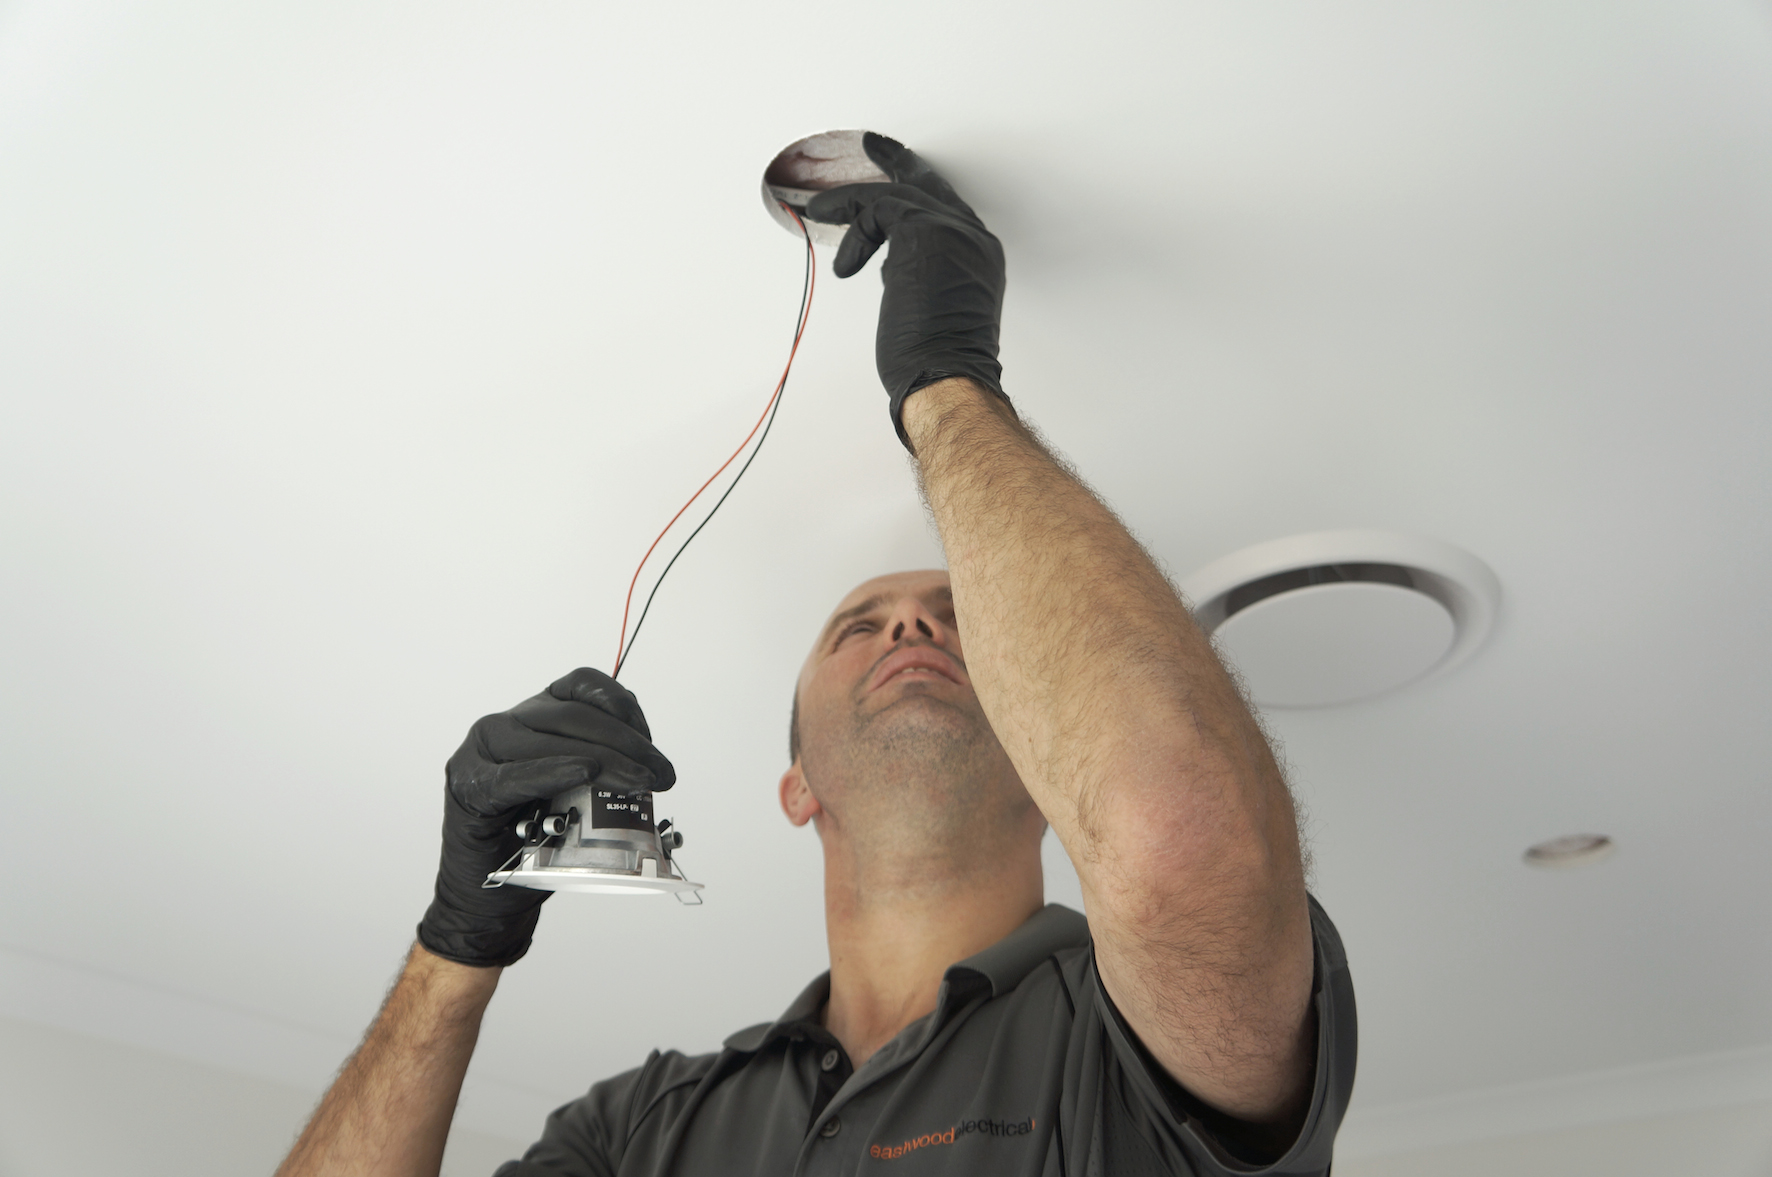 Josh Eves, Registered Electrician, installing a downlight